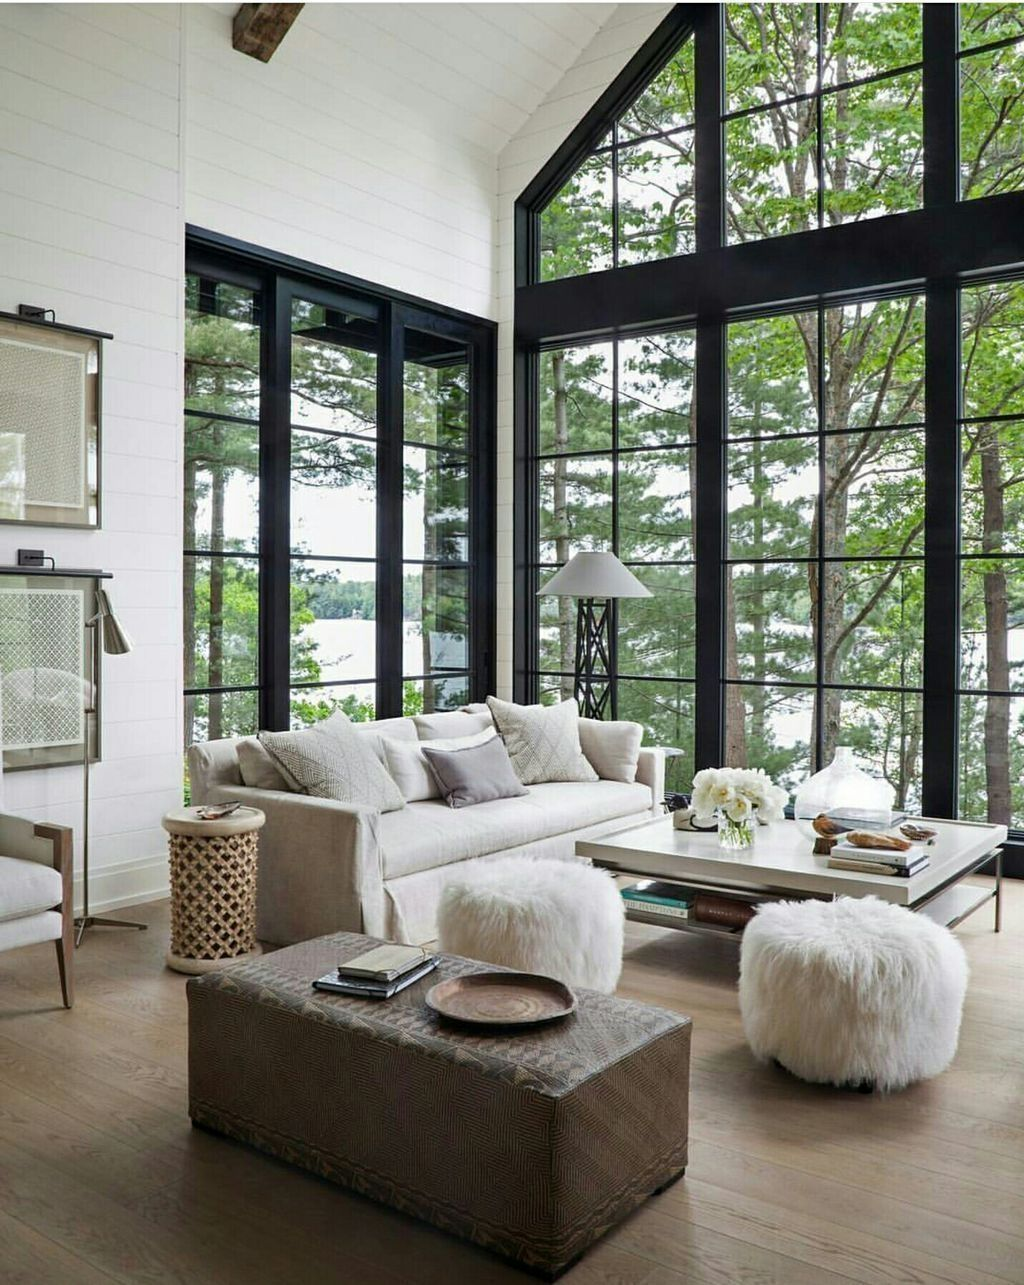 Home Design Ideas Living Room: 38 Beautiful Lake House Decorating Ideas